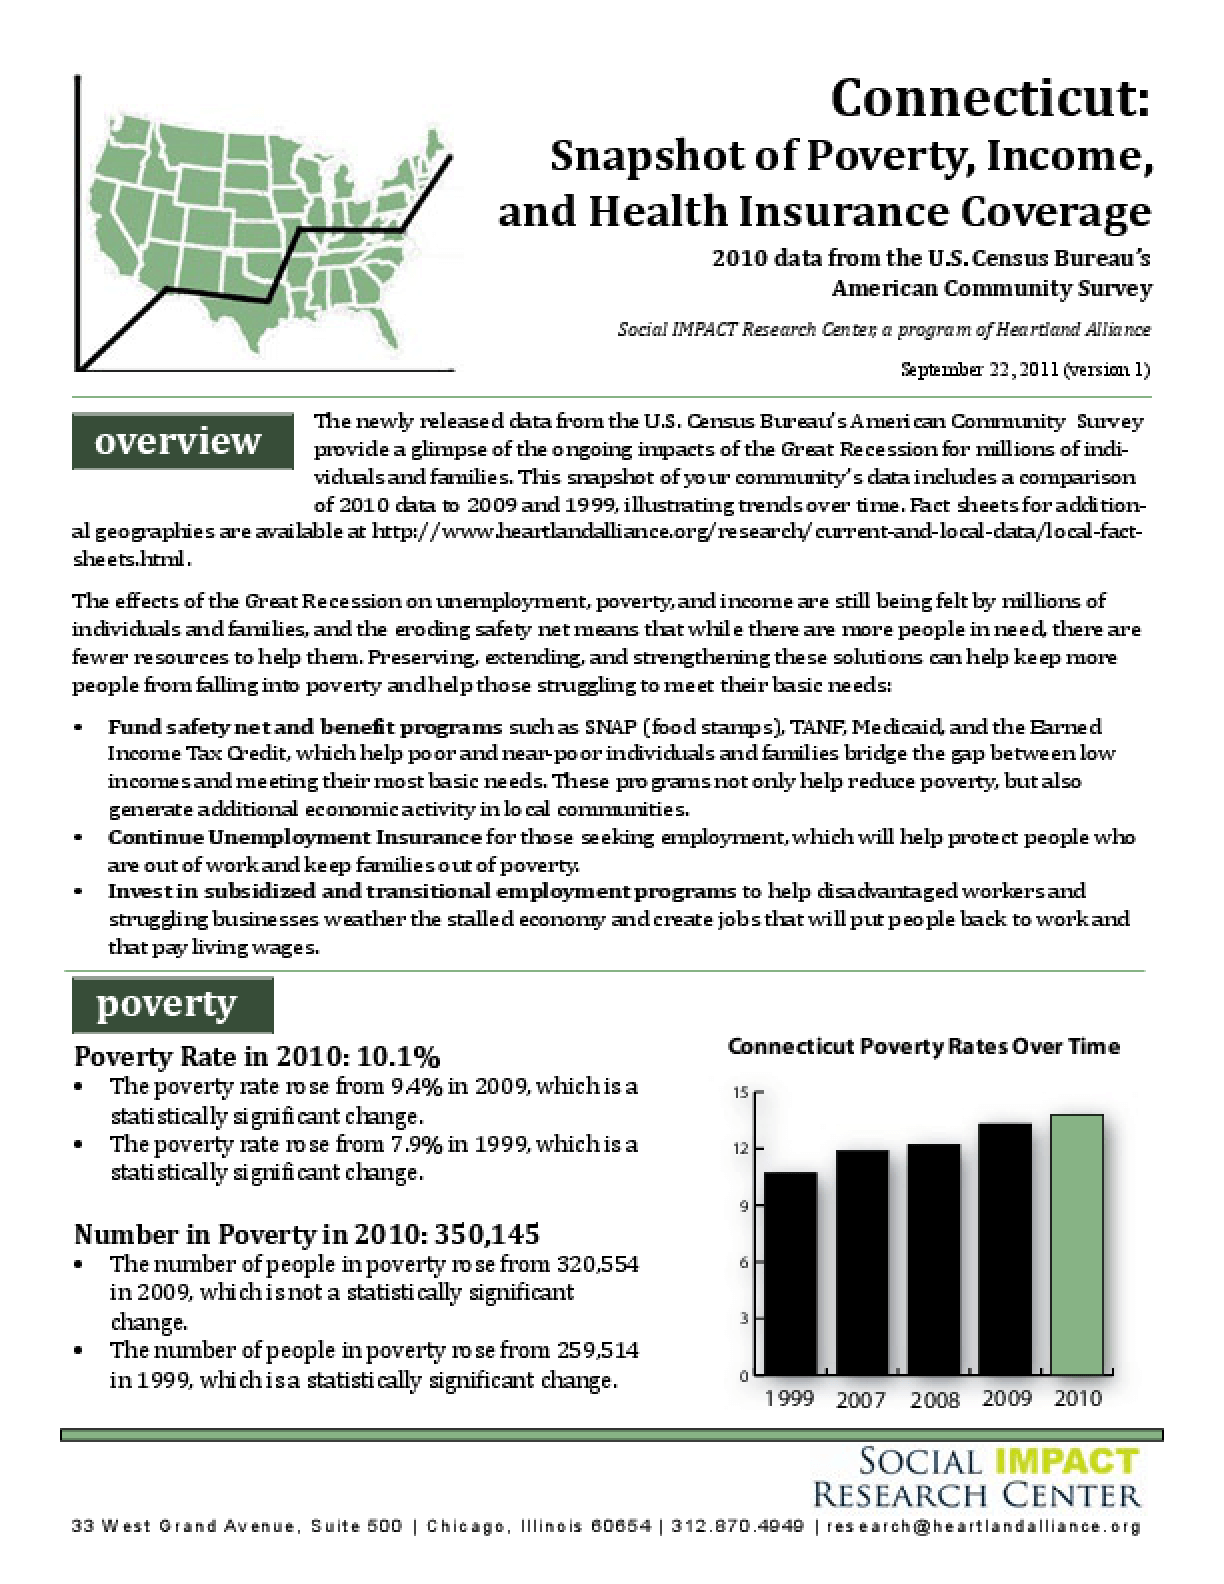 Connecticut: Snapshot of Poverty, Income, and Health Insurance Coverage